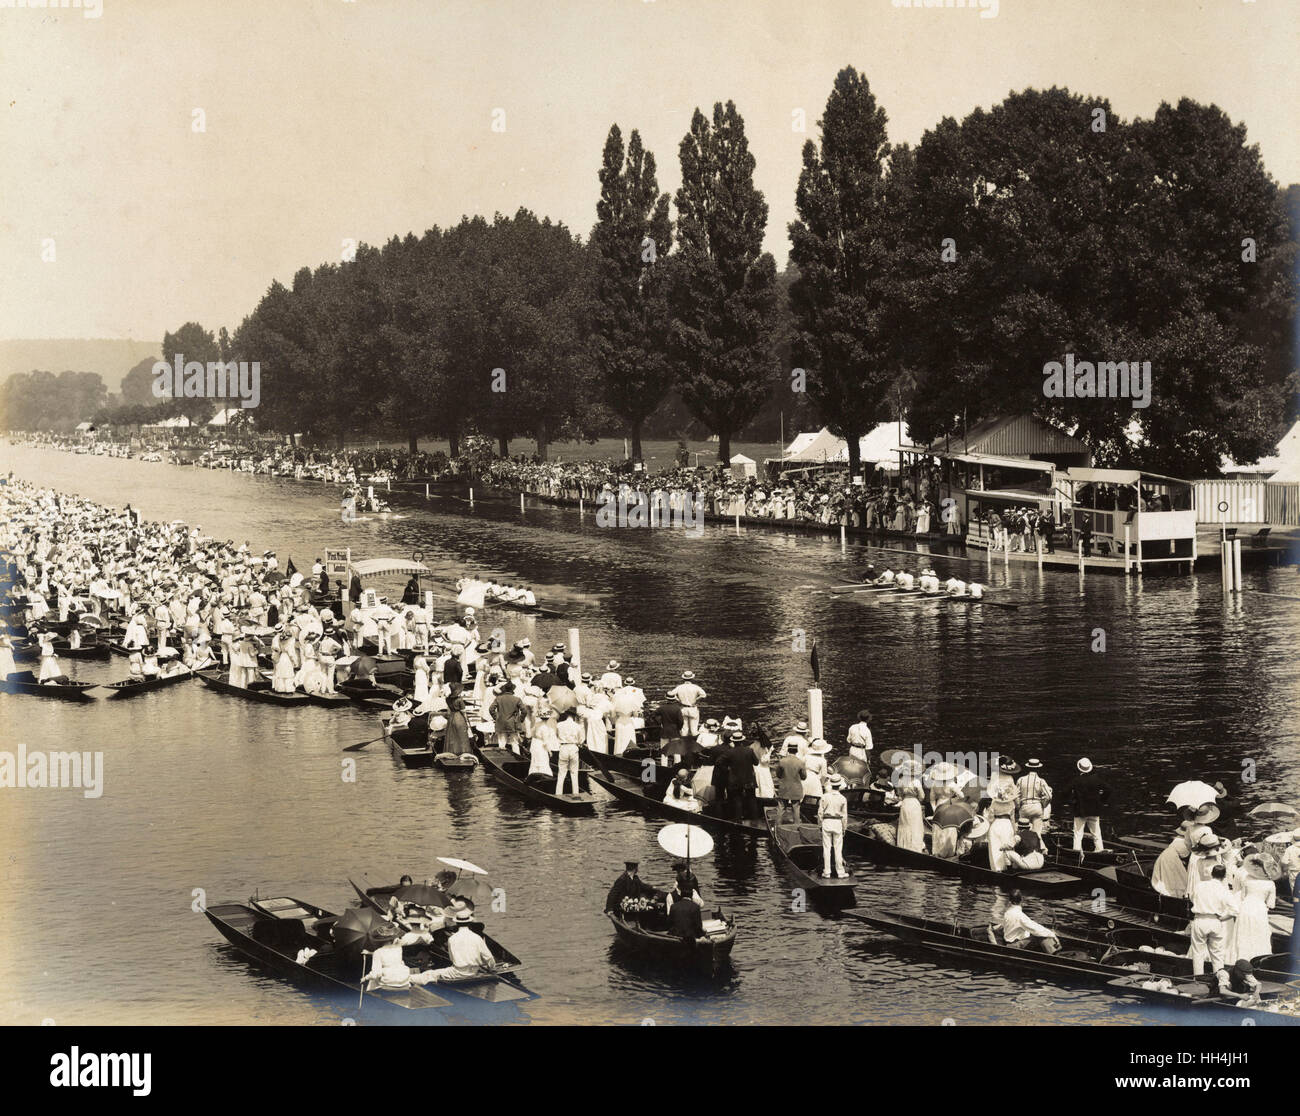 A rowing regatta on a summer's day. - Stock Image